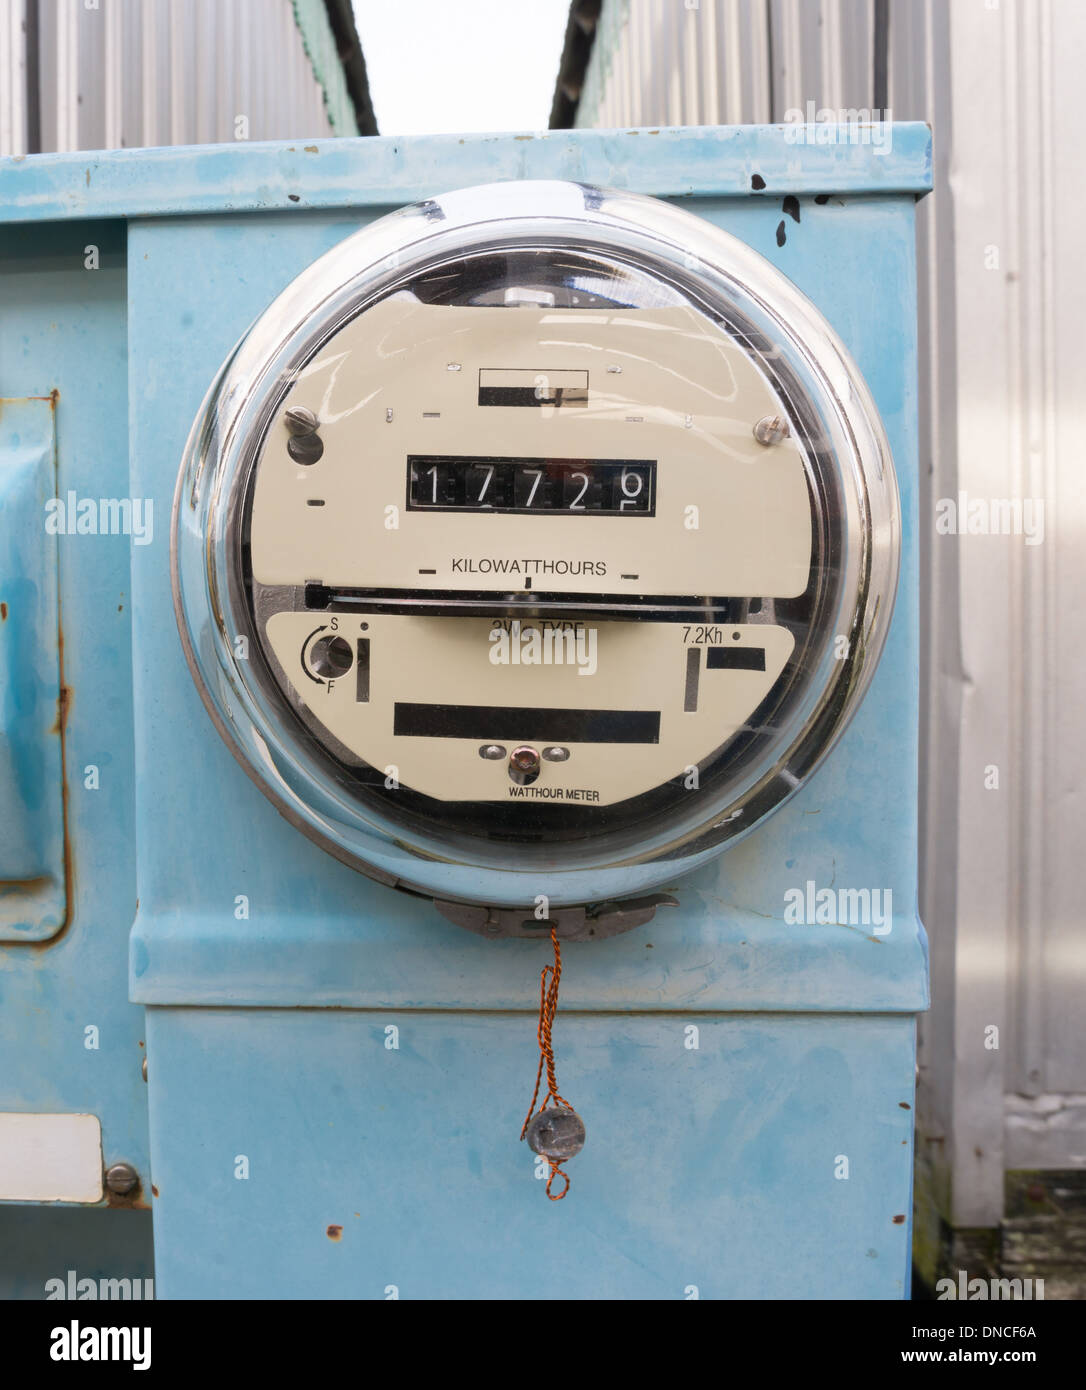 Analog Electric Meter : Utility electric meters outside old analog style stock